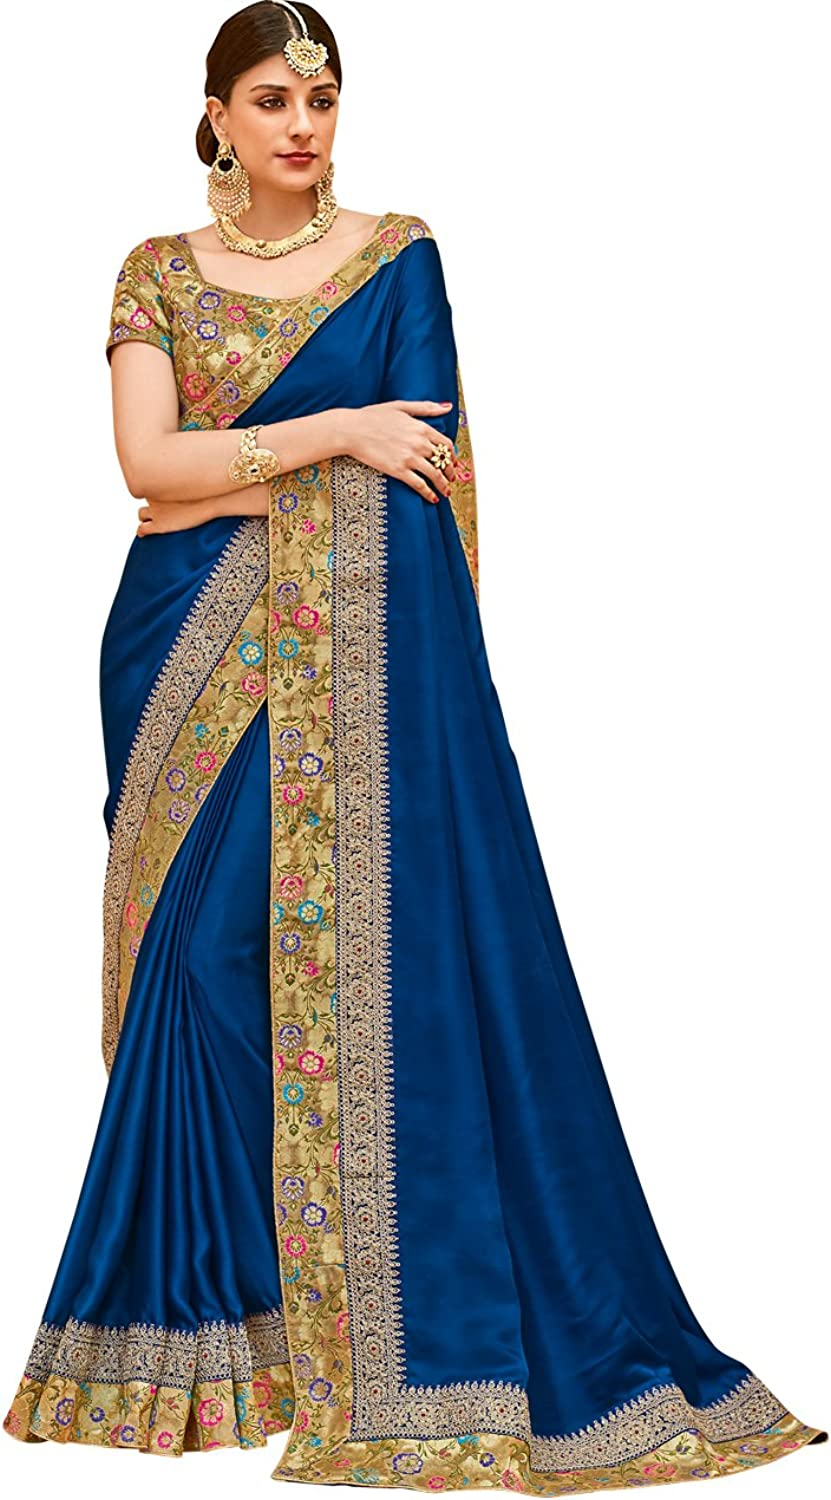 Indian Ethnicwear Bollywood Wedding Faux Crepe Silk Royel bluee Coloured Fancy Saree